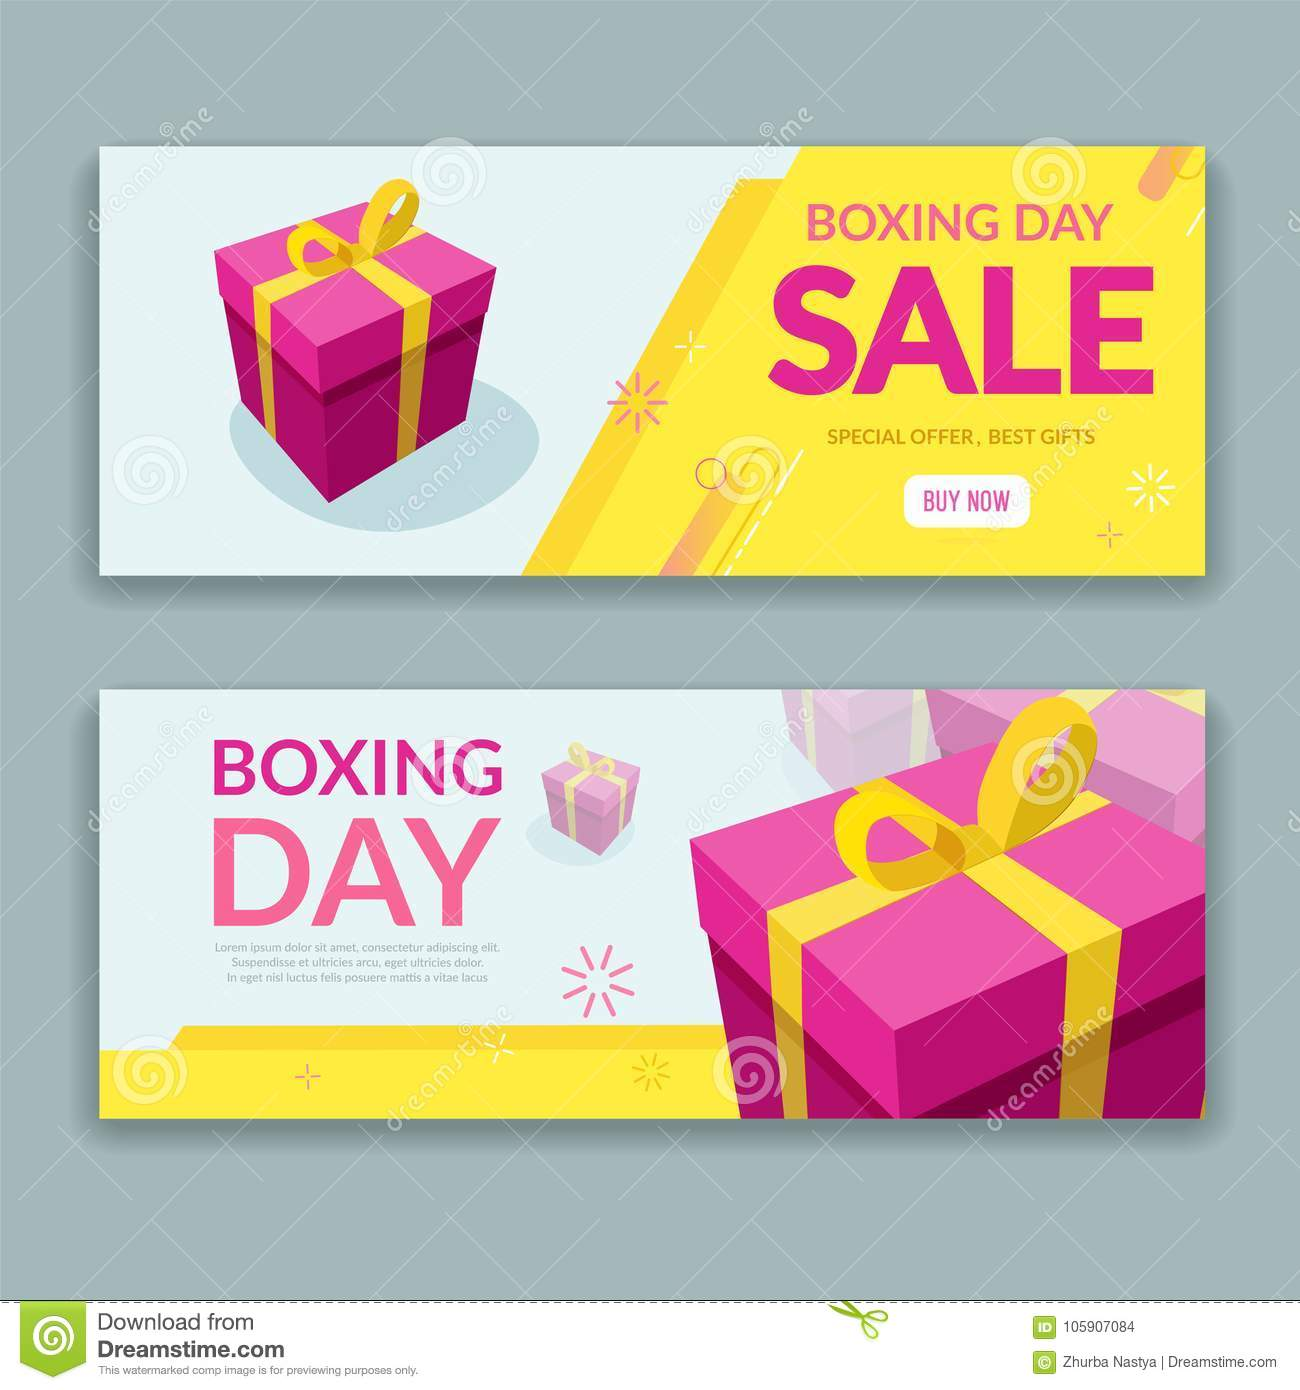 Boxing Day Sale Design With Colorful Packaged Gift Box Stock Vector